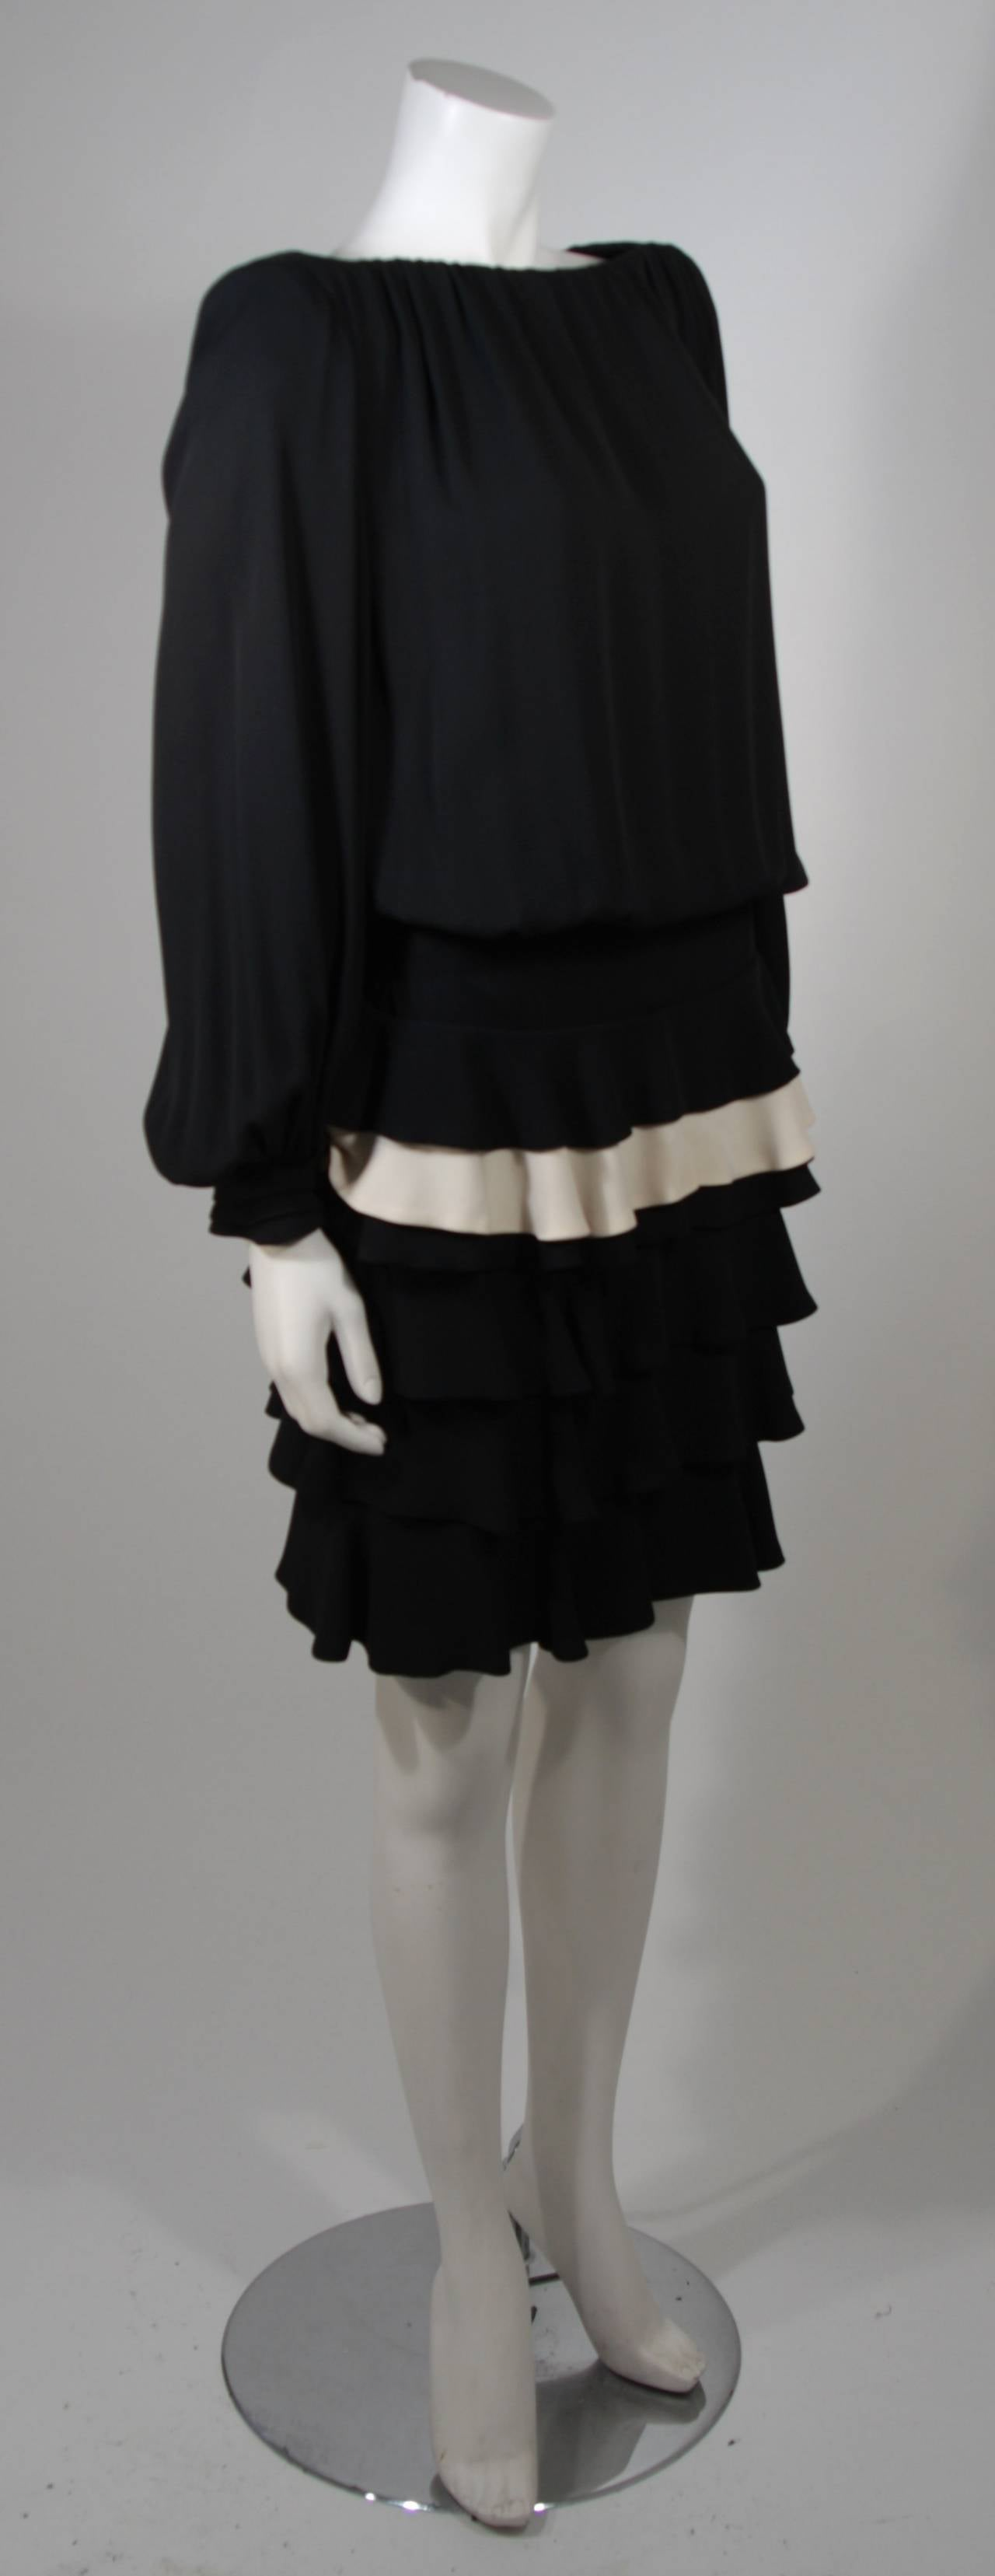 Galanos Black and Cream Ruffled Cocktail Dress with Dramatic Neckline Size 2 4